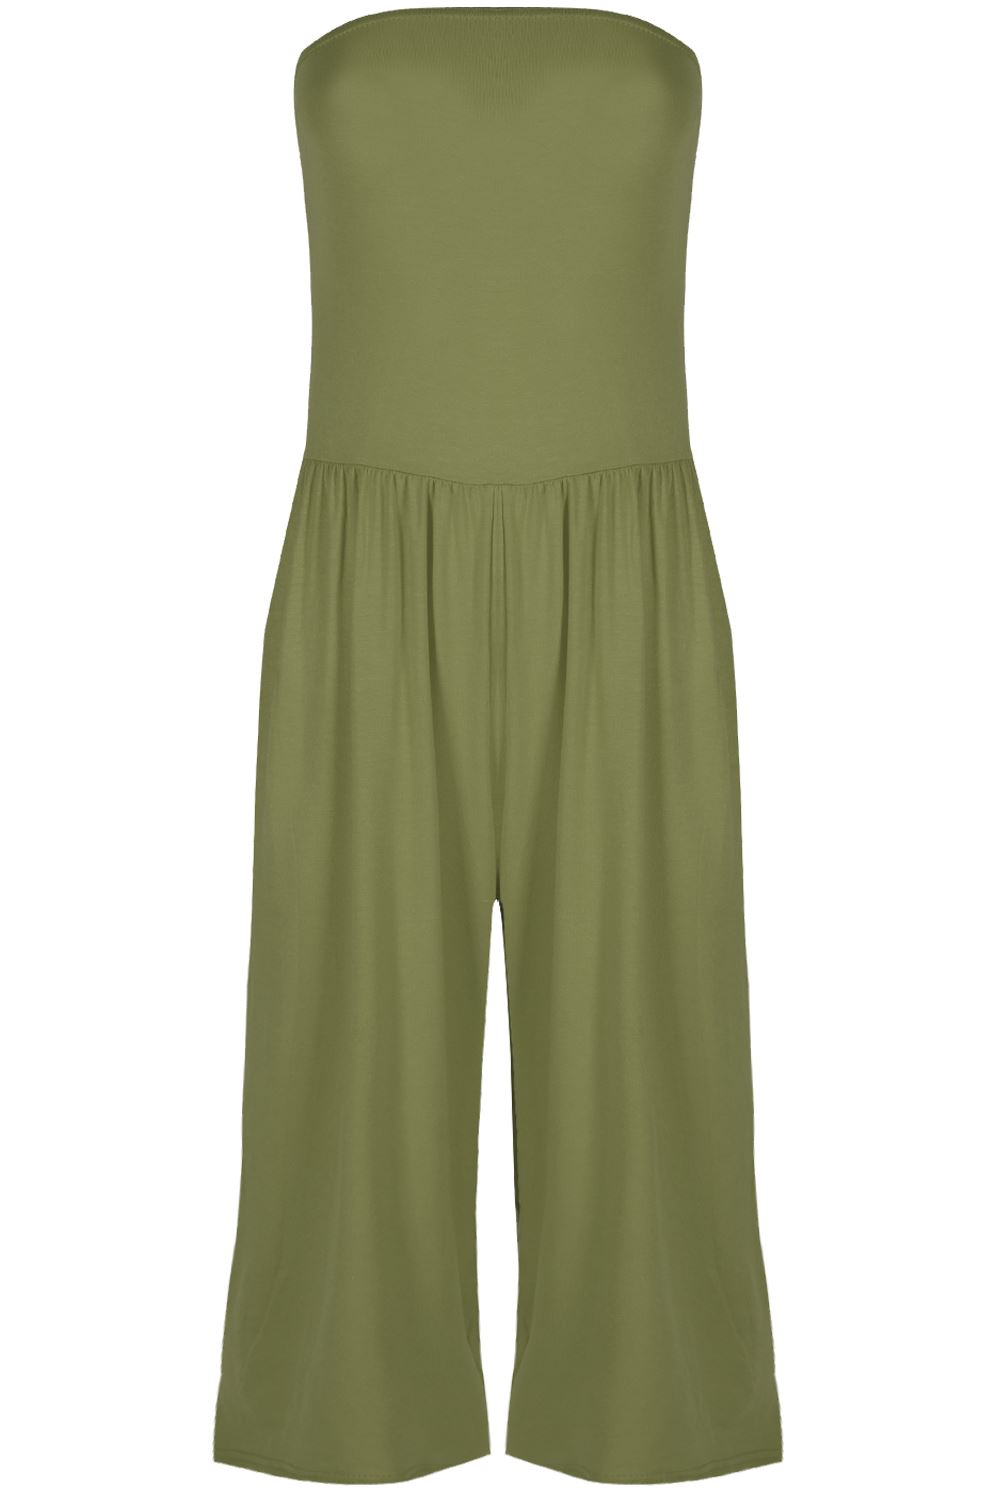 Jumpsuits & Playsuits (64) Ditch the dress and stand out in one of our jumpsuits and playsuits, we have culottes to camis, evening silk, slip on's to comfy jersey basics. Everything you need from a all in one unitard in the morning to a top to toe sequined night look.